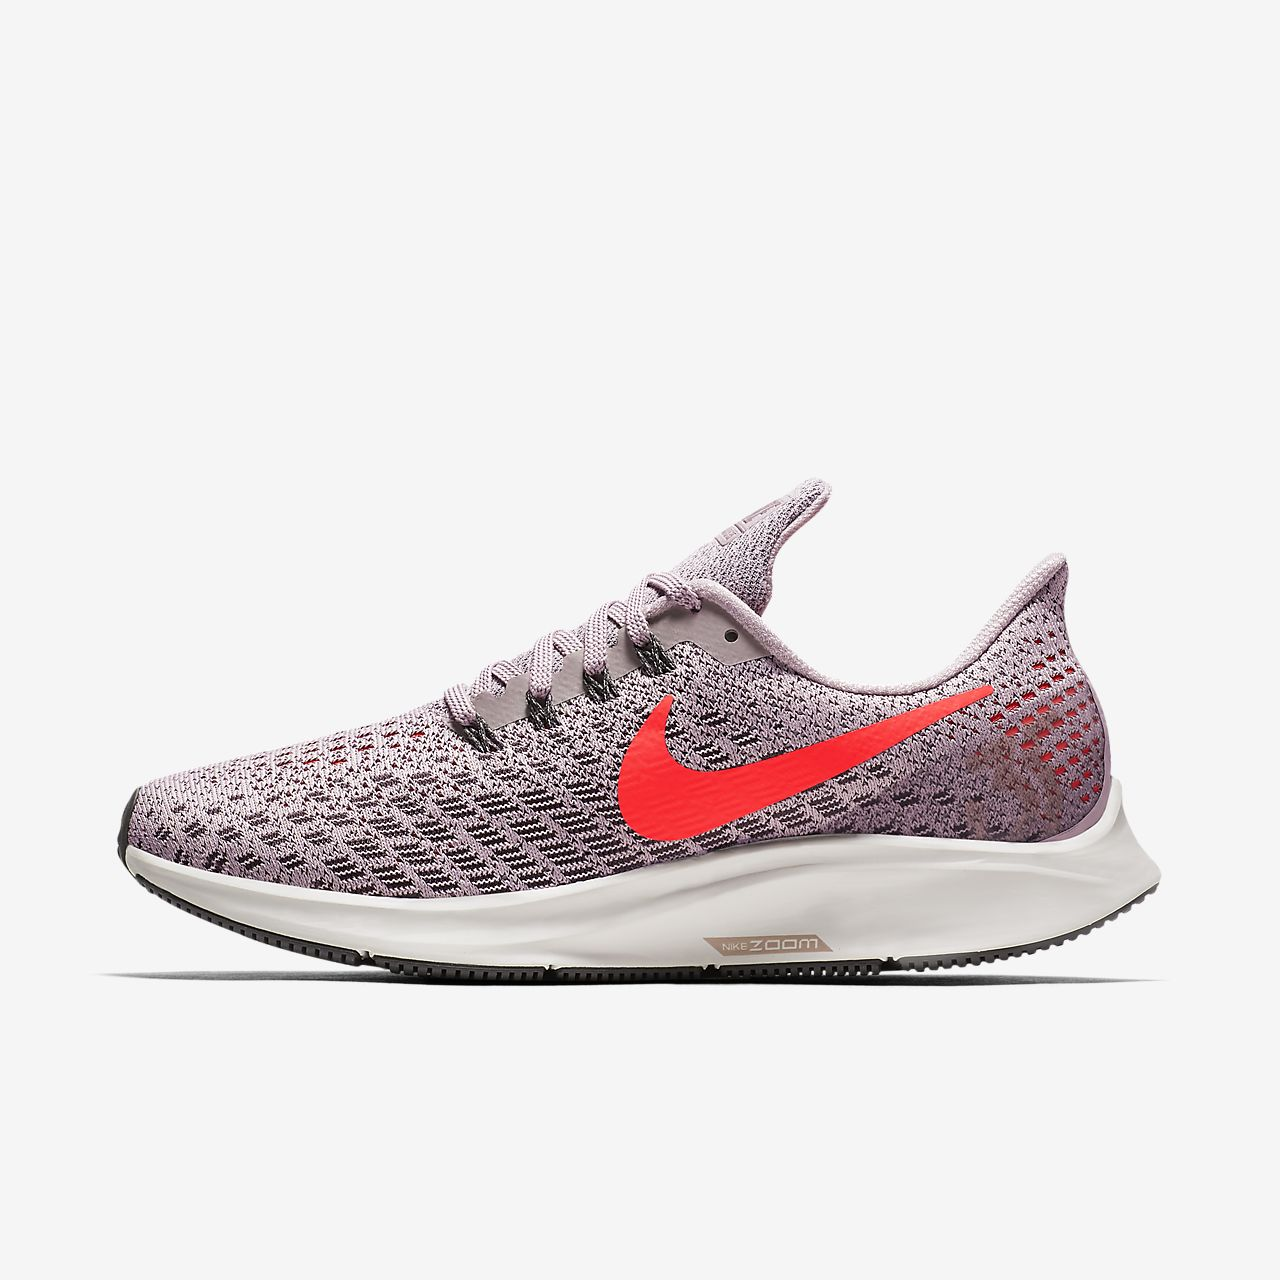 new product 7f3f0 d980a ... Chaussure de running Nike Air Zoom Pegasus 35 pour Femme